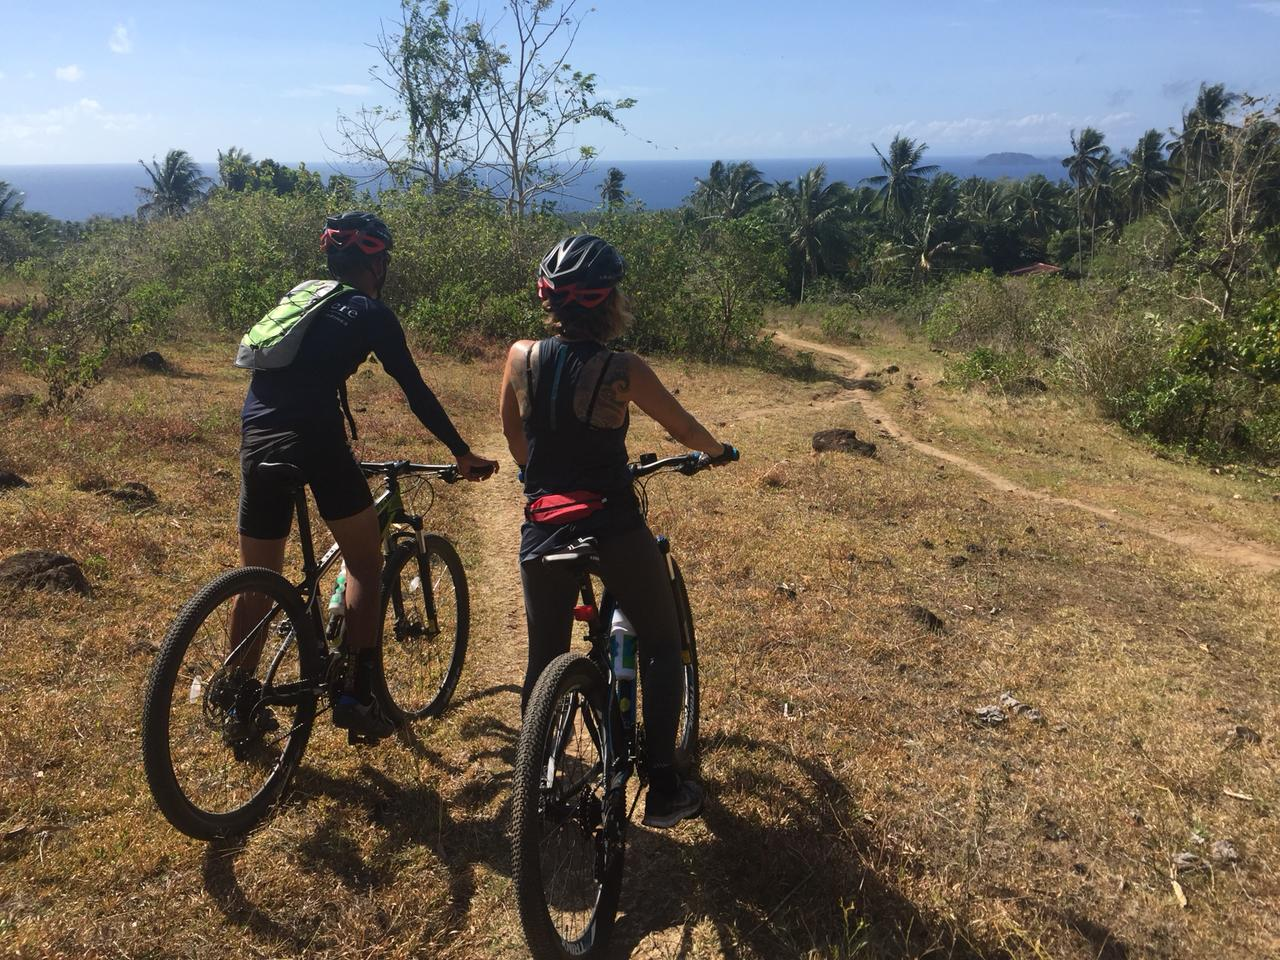 Fitness with a view. Mountain biking at Atmosphere Resort, Dumaguete, Philippines